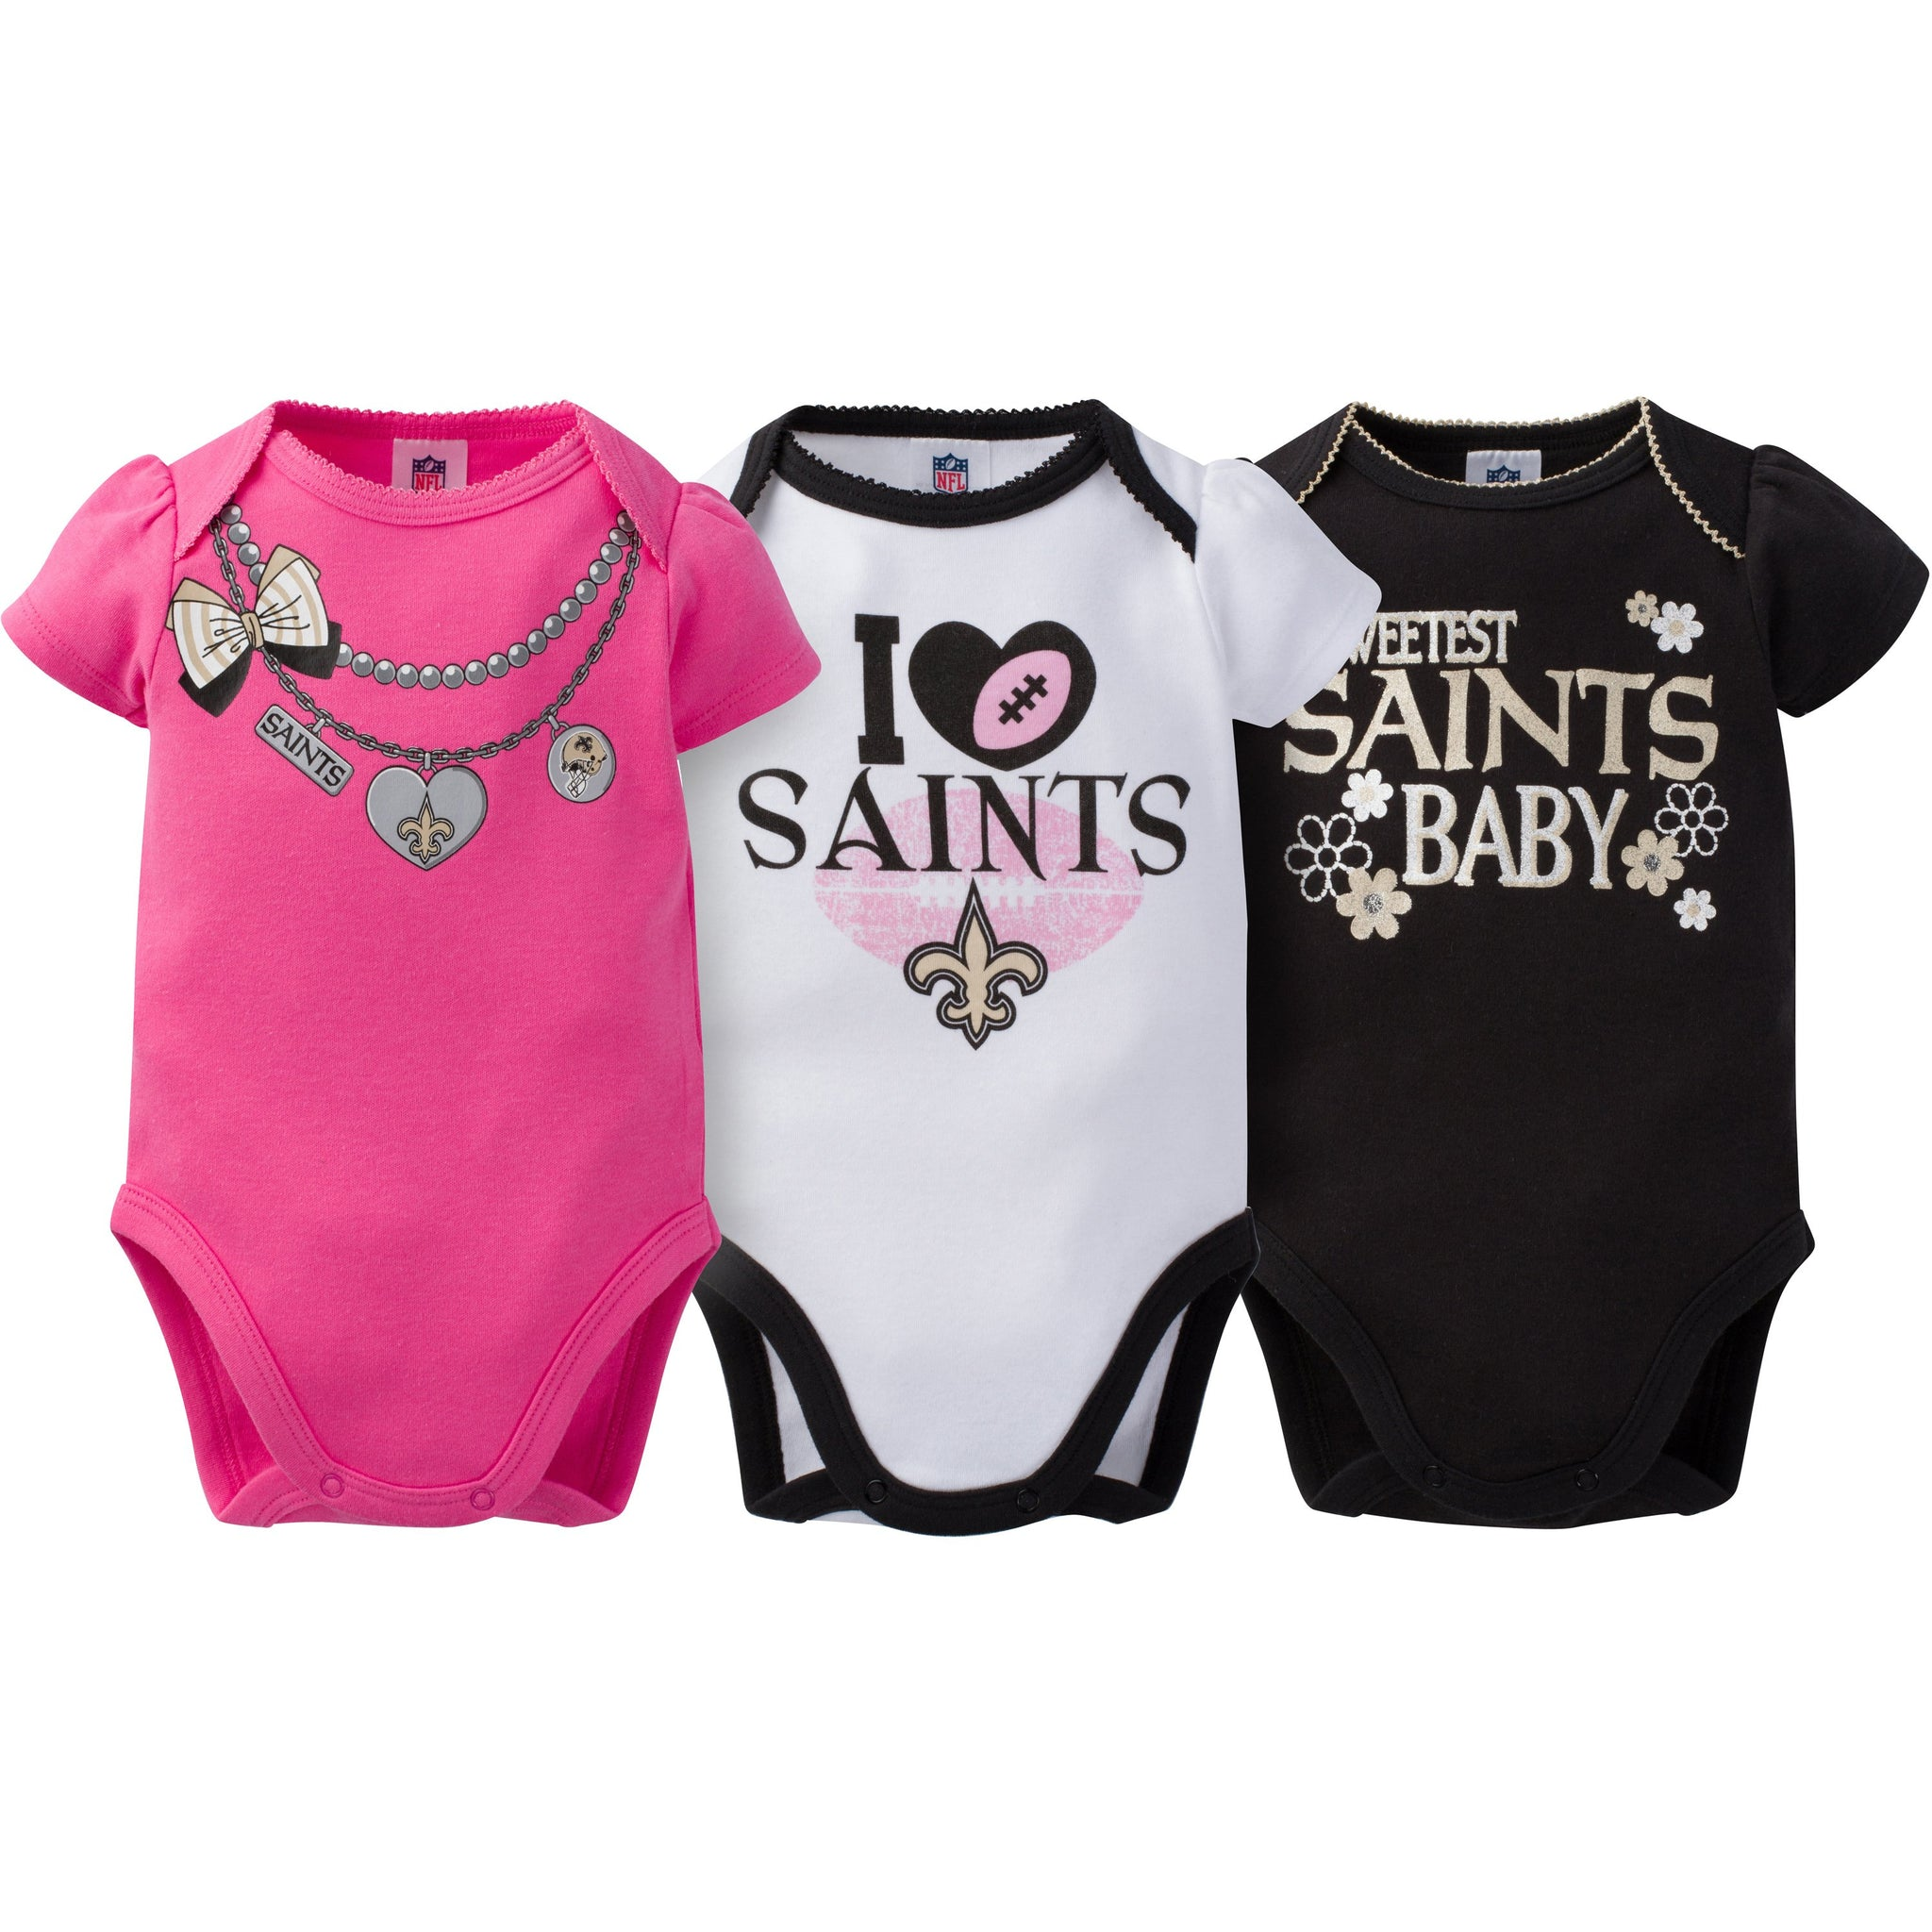 quality design bd711 11c8e New Orleans Saints Baby Clothing | Gerber Childrenswear